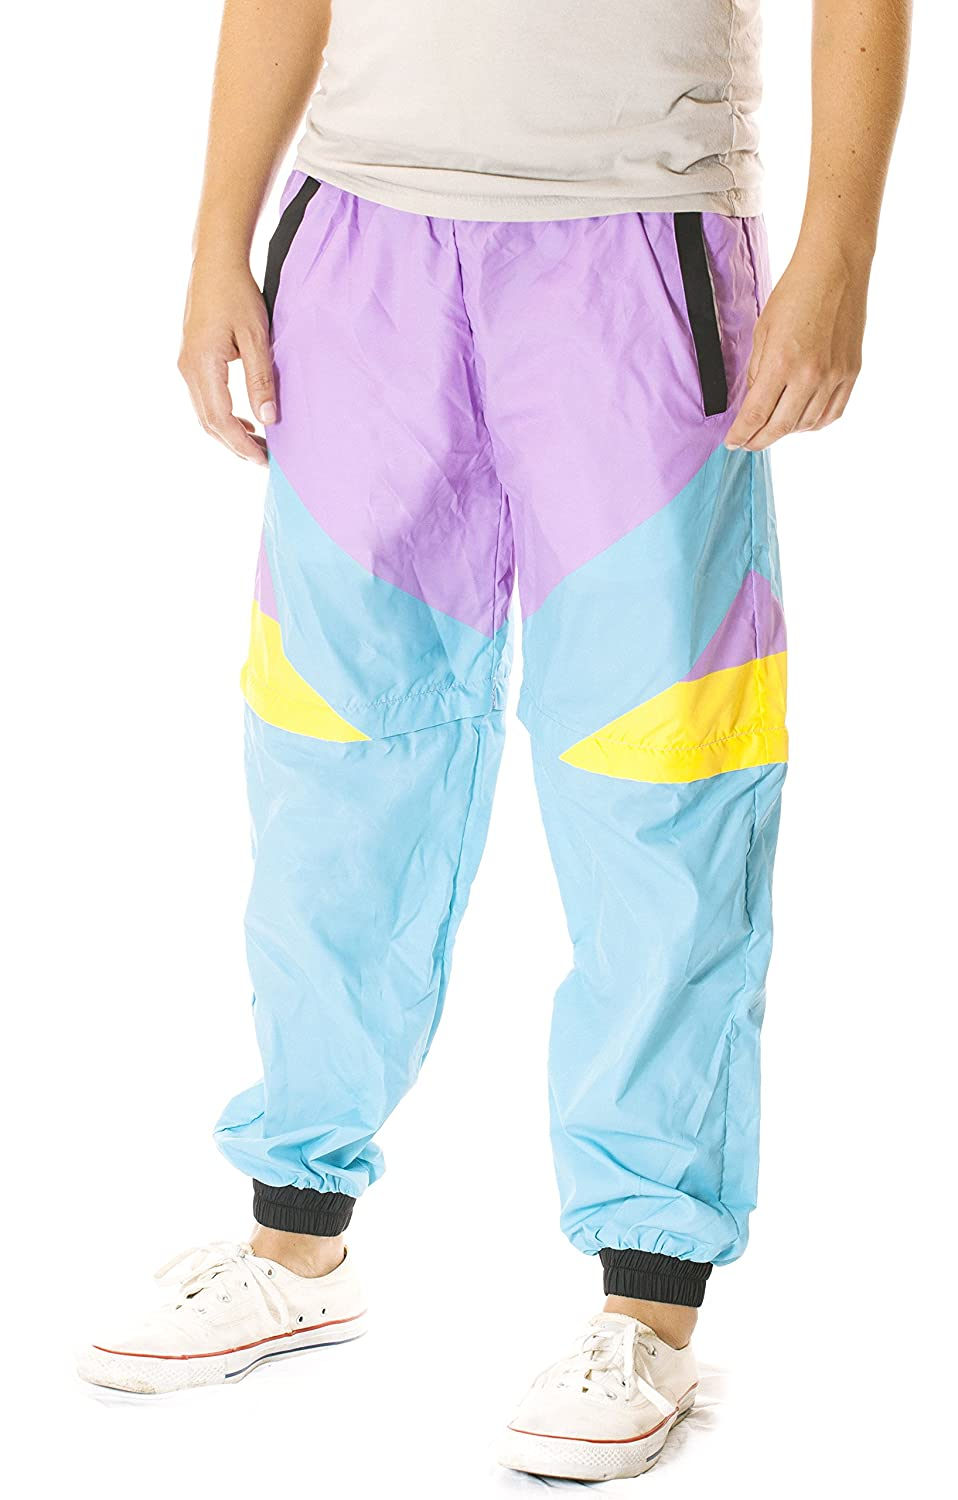 80s Mens Jeans, Pants, Parachute, Tracksuits Funny Guy Mugs 80s & 90s Retro Neon Windbreaker Pants - Convertible Shorts Or Pants $46.99 AT vintagedancer.com